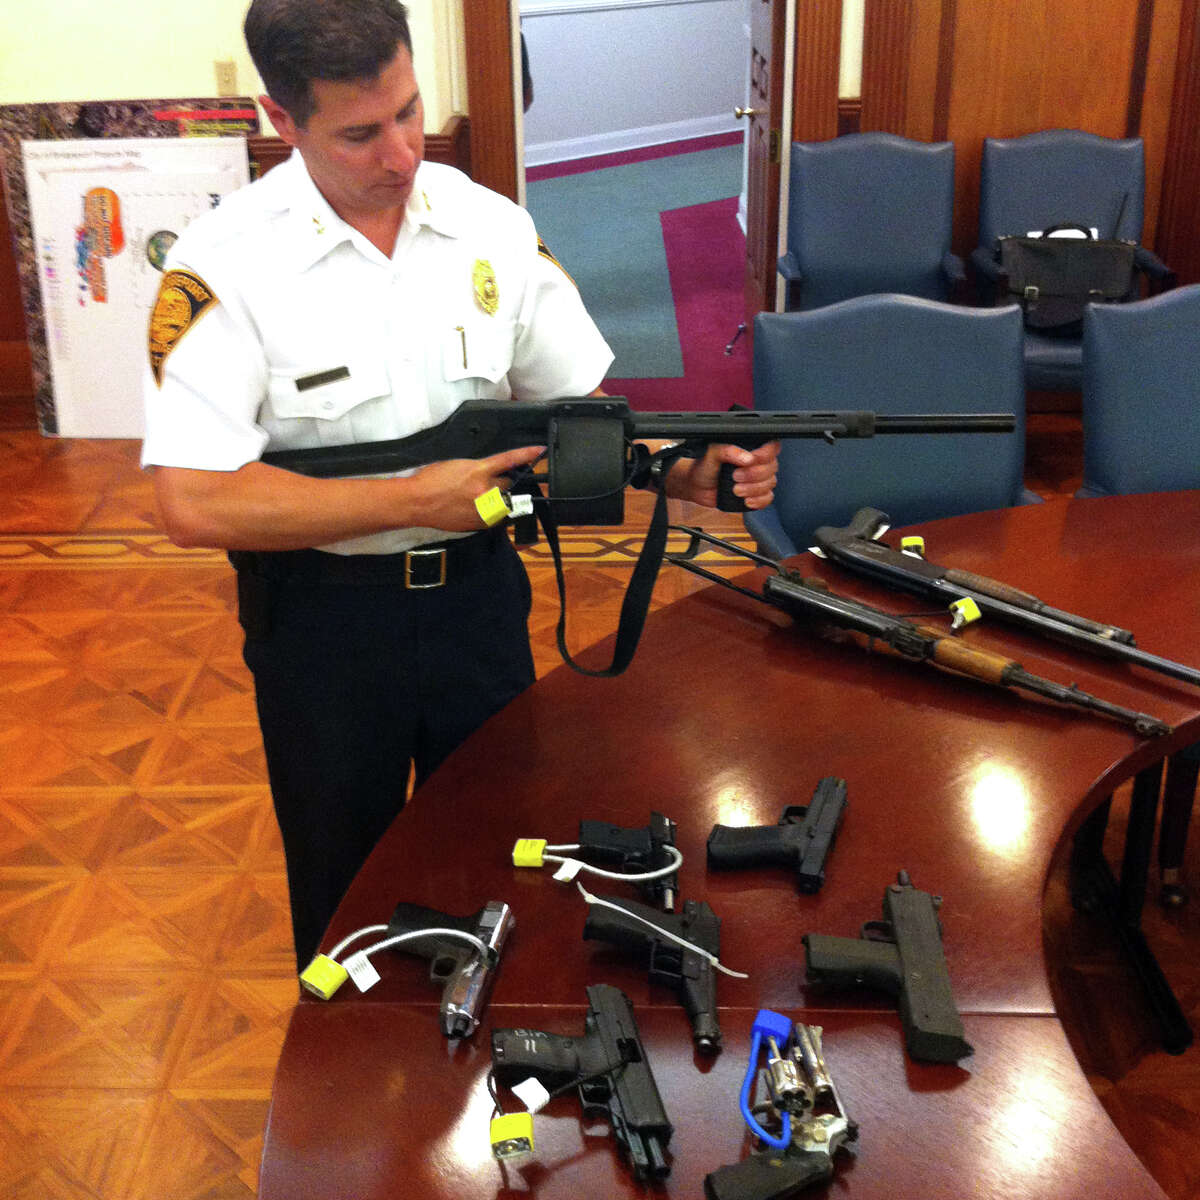 Bridgeport Assistant Police Chief James Nardozzi displays a Streetsweeper shotgun turned in during one of the cityâÄôs previous gun buyback programs.The department is hosting another buyback on Saturday and seeking financial support to help pay for the weapons.